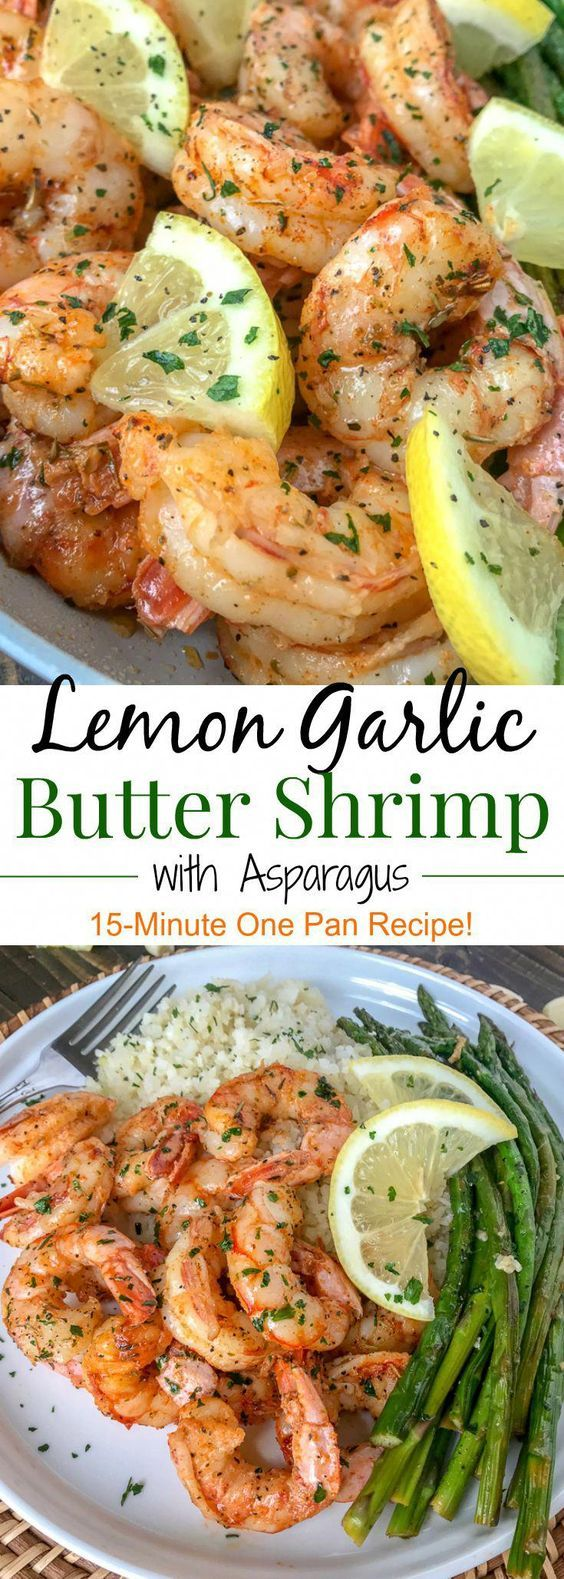 LEMON GARLIC BUTTER SHRIMP WITH ASPARAGUS #recipes #dinnerrecipes #dinnerideas #foodrecipes #foodrecipeideasfordinner #food #foodporn #healthy #yummy #instafood #foodie #delicious #dinner #breakfast #dessert #lunch #vegan #cake #eatclean #homemade #diet #healthyfood #cleaneating #foodstagram